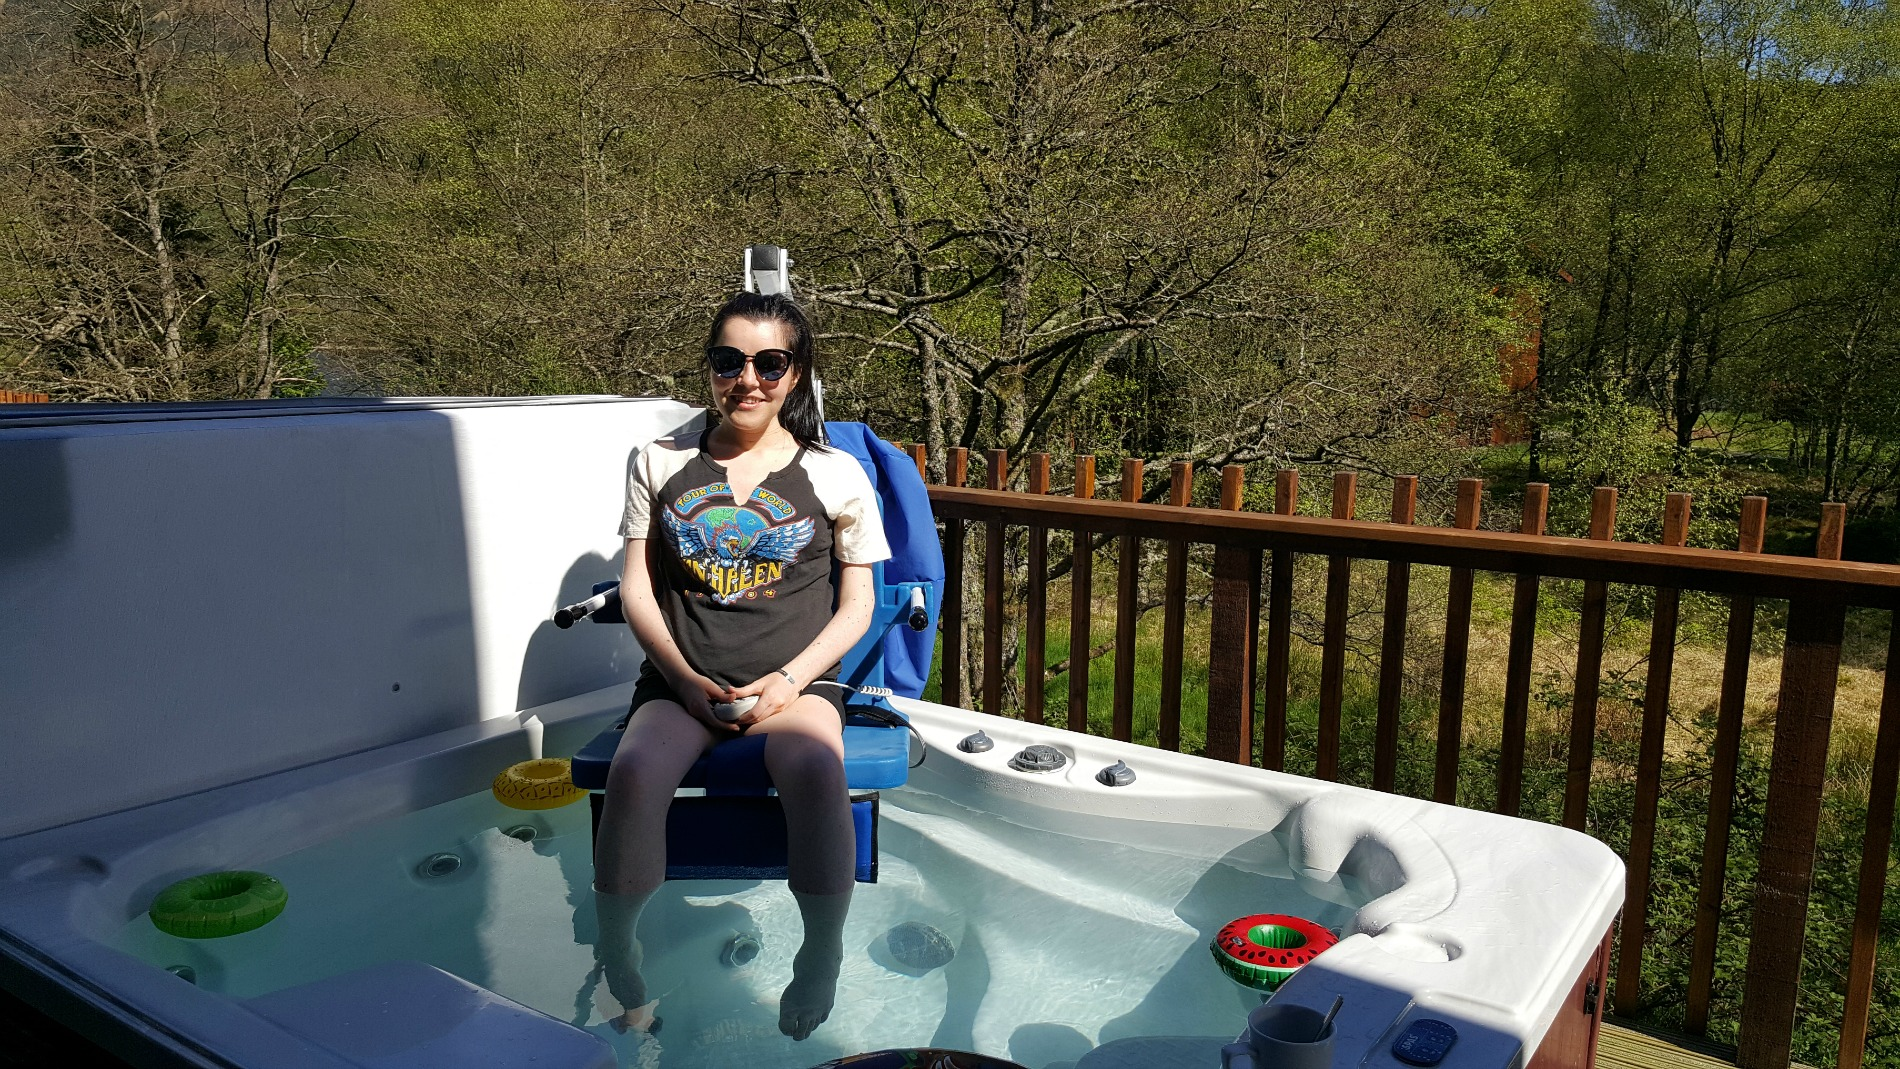 forest_holidays_strathyre_hot_tub_hoist